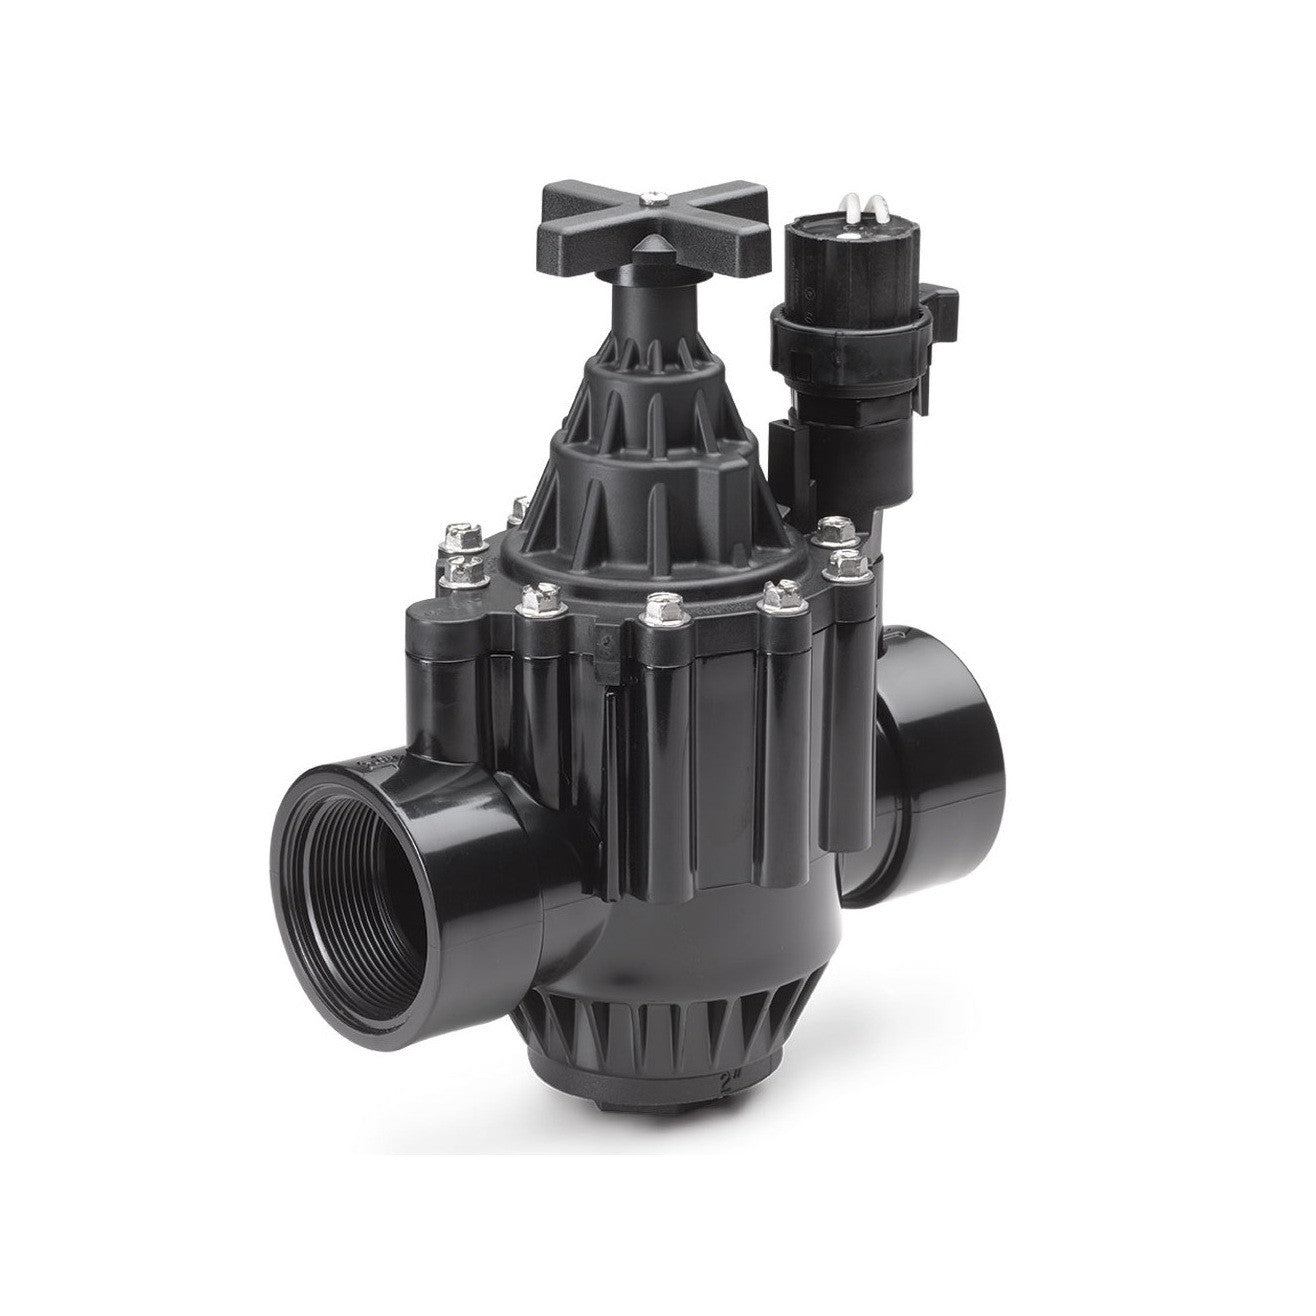 Rain Bird PGA Series Solenoid Control Valve - Smart Garden Center